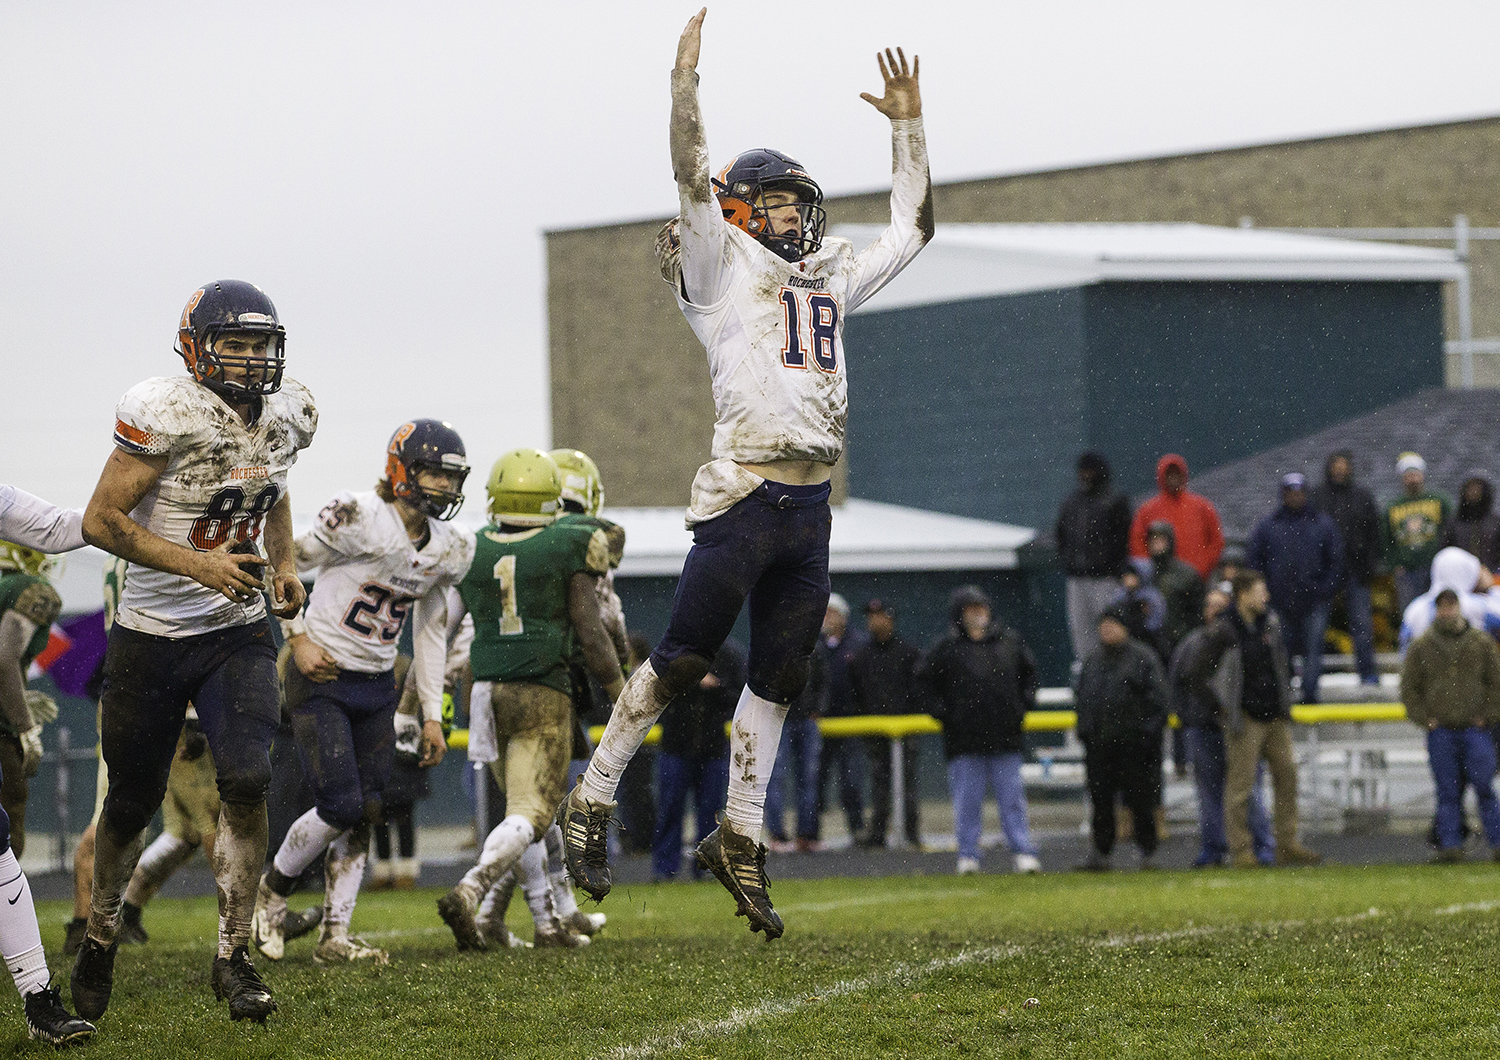 Rochester's Clay Bruno celebrates an extra point against Bishop McNamara during the Class 4A semifinal at Kankakee Bishop McNamara Saturday, Nov. 17, 2018. [Ted Schurter/The State Journal-Register]